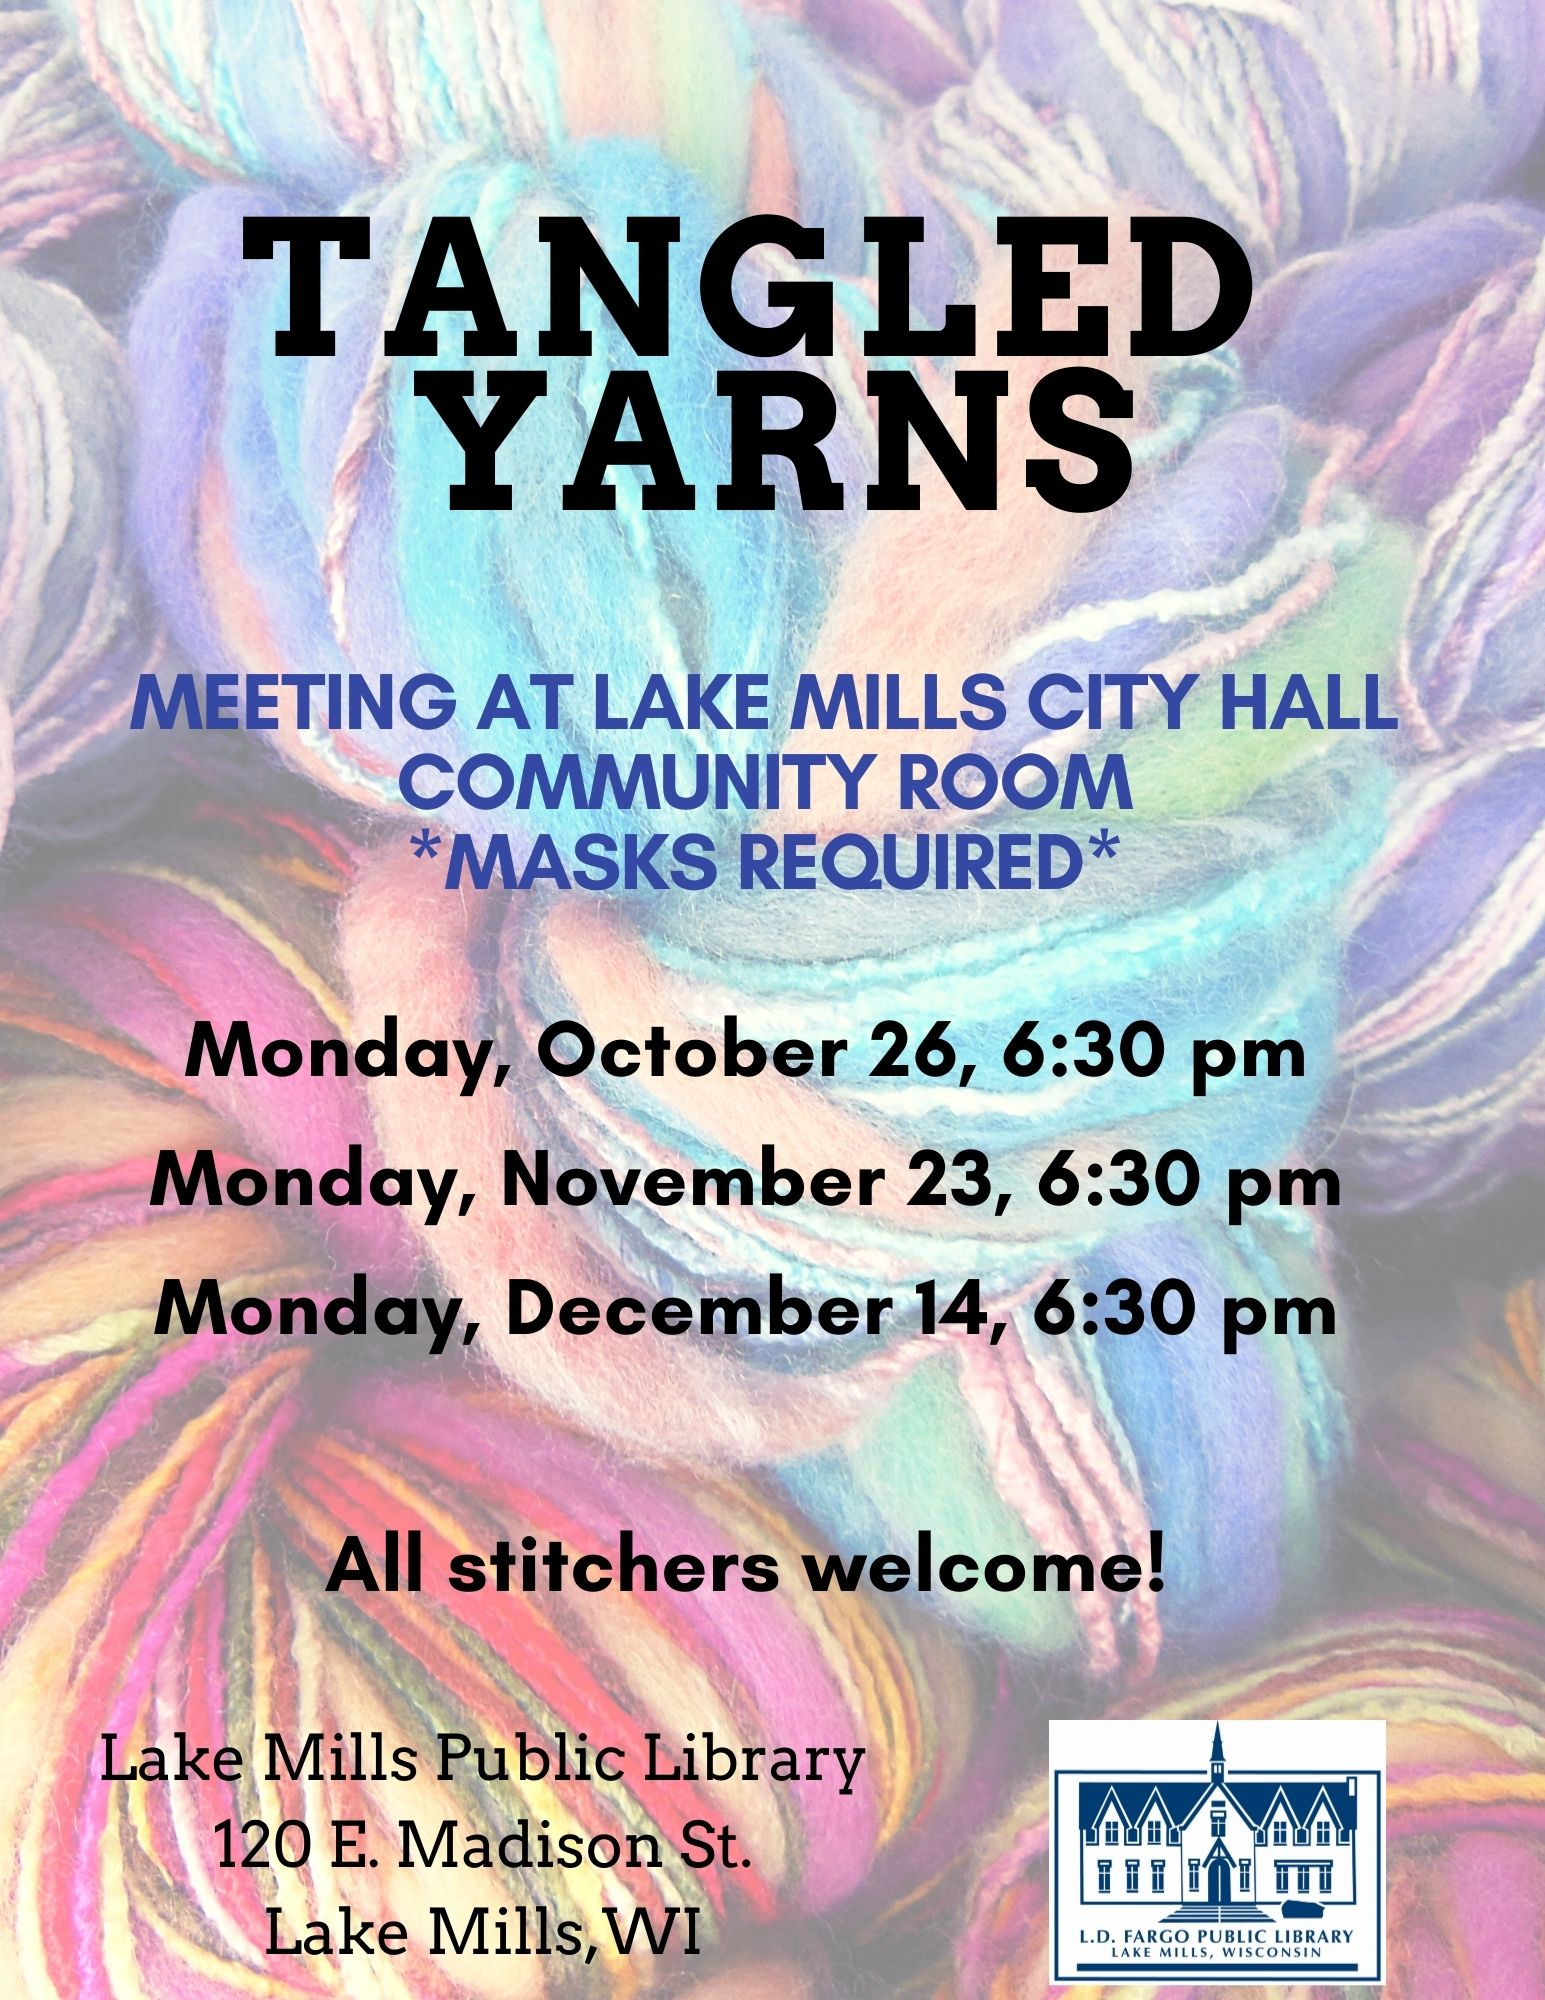 Tangled Yarns.  Meetings at lake mills city hall community room *masks required* Monday, October 26, 6:30 pm Monday, November 23, 6:30 pm Monday, December 14, 6:30 pm  All stitchers welcome!